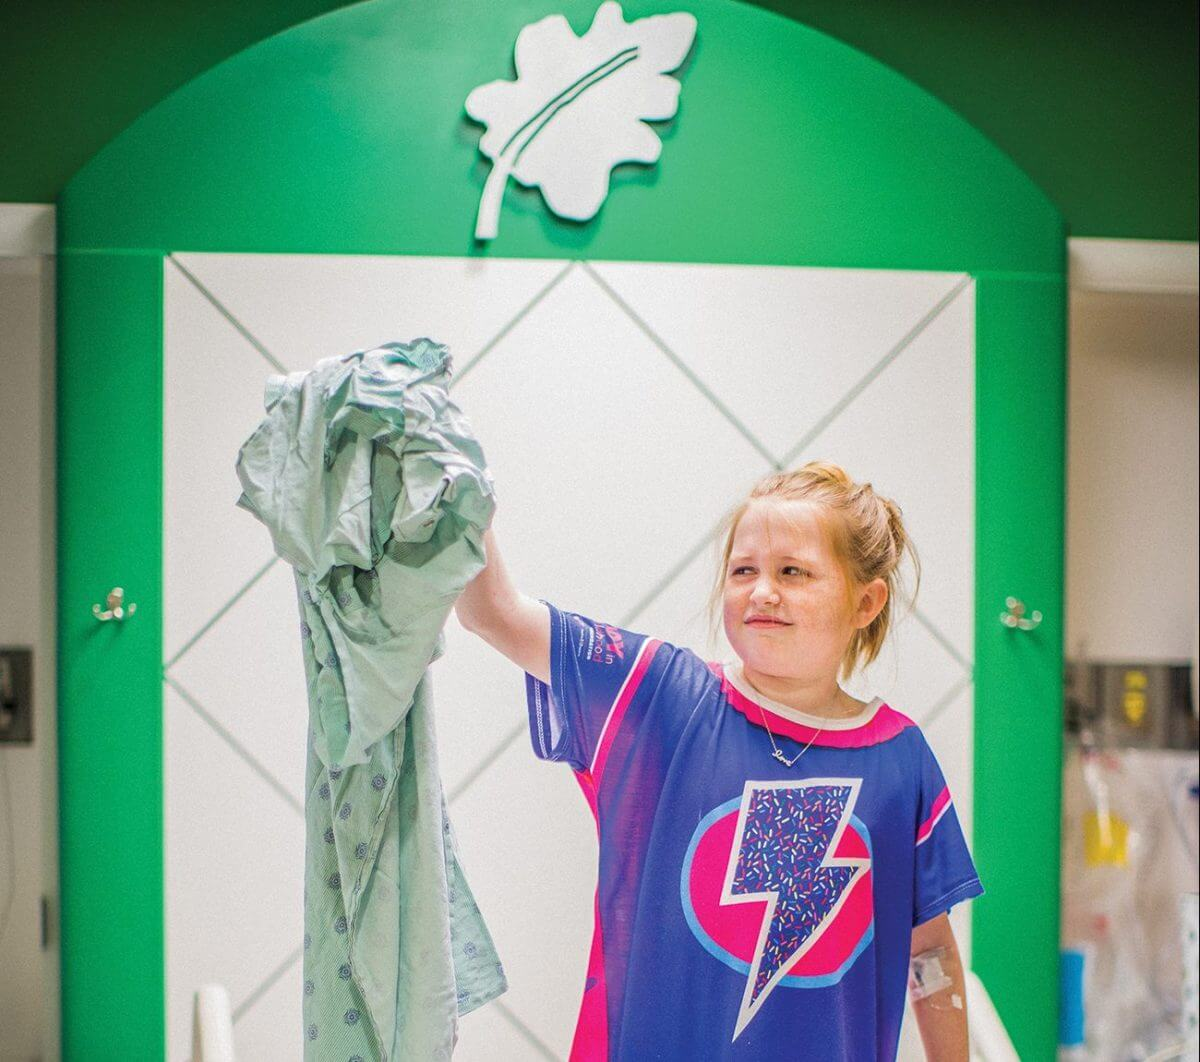 Evie Baxter, an 11-year-old patient at Children's Memorial Hermann Hospital, sports her Starlight gown while holding an old, traditional gown for comparison.